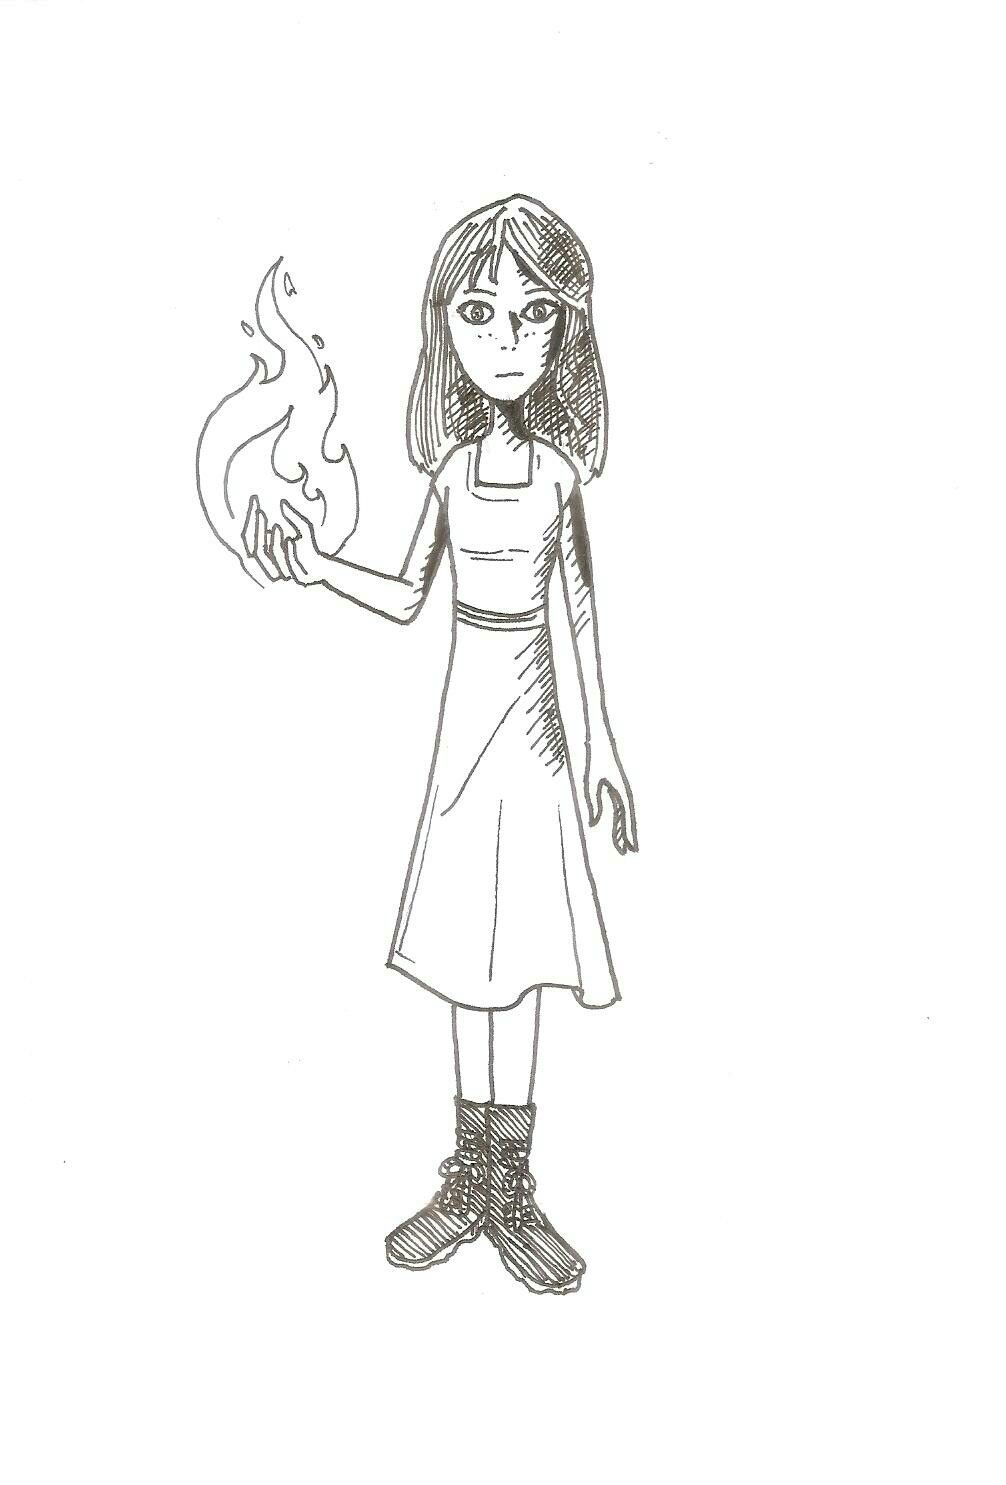 Miss Peregrine's home for peculiar children. Emma Bloom.